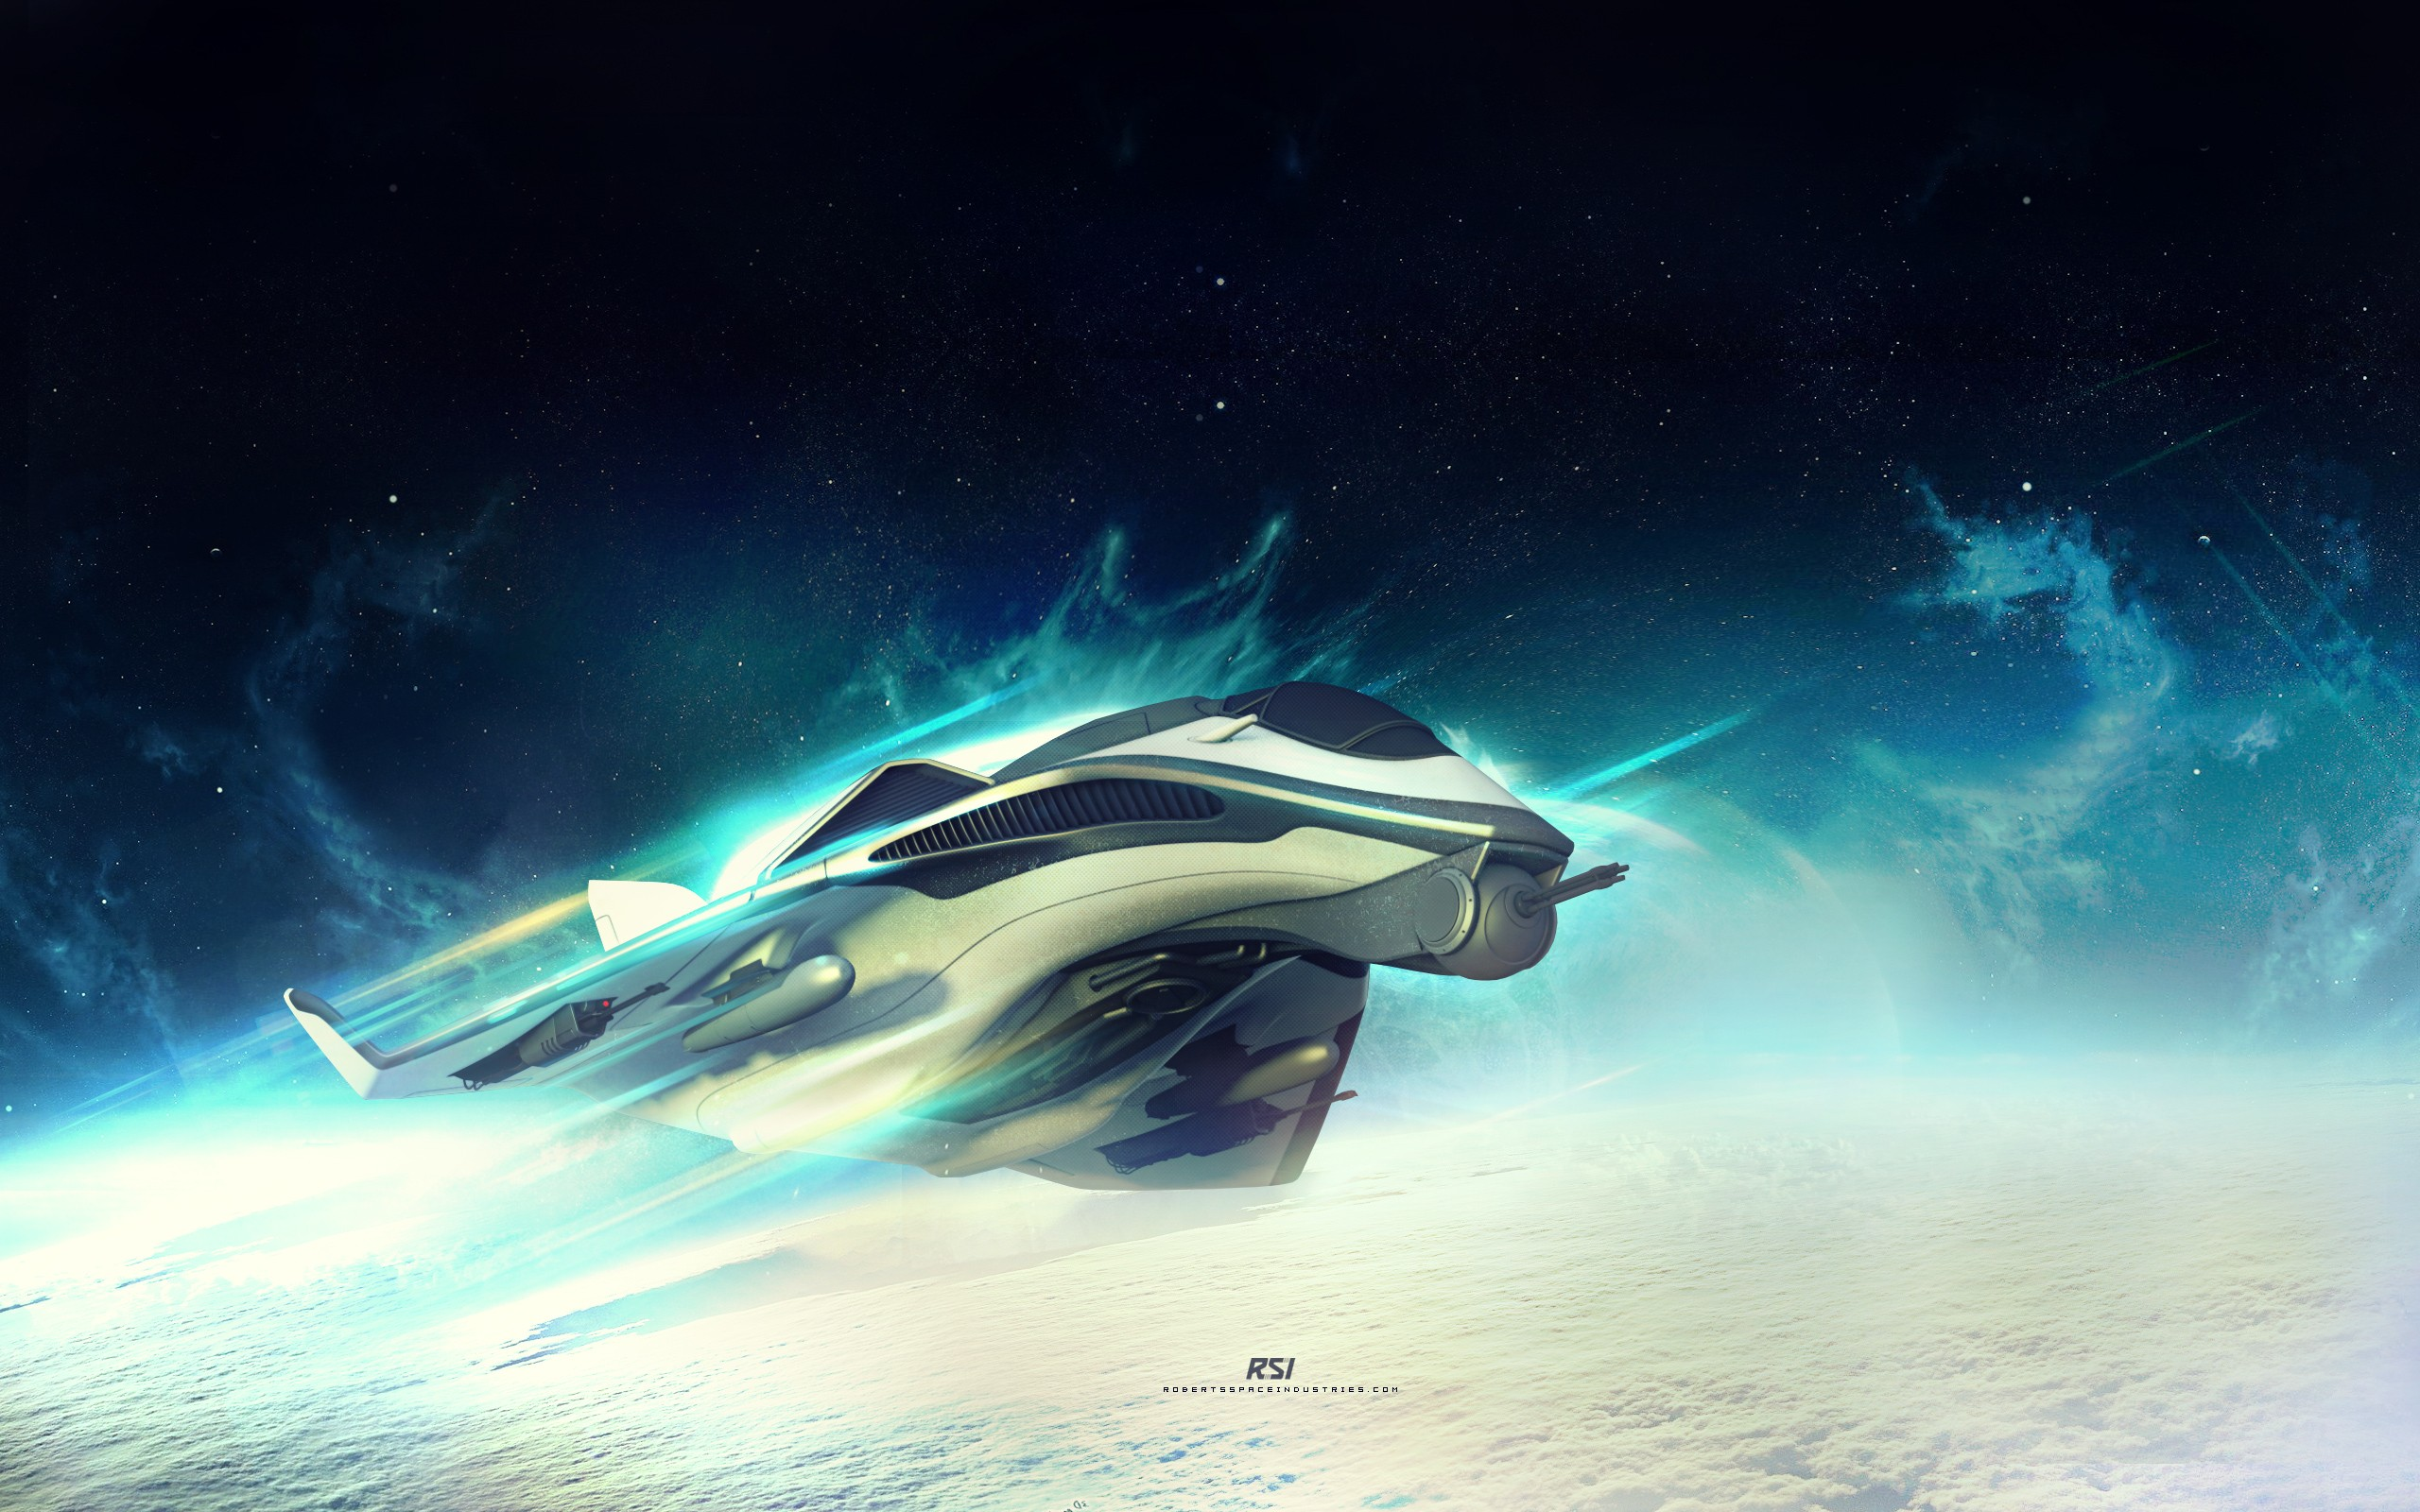 Star Citizen Wallpaper 1 Download Free Full HD Backgrounds For